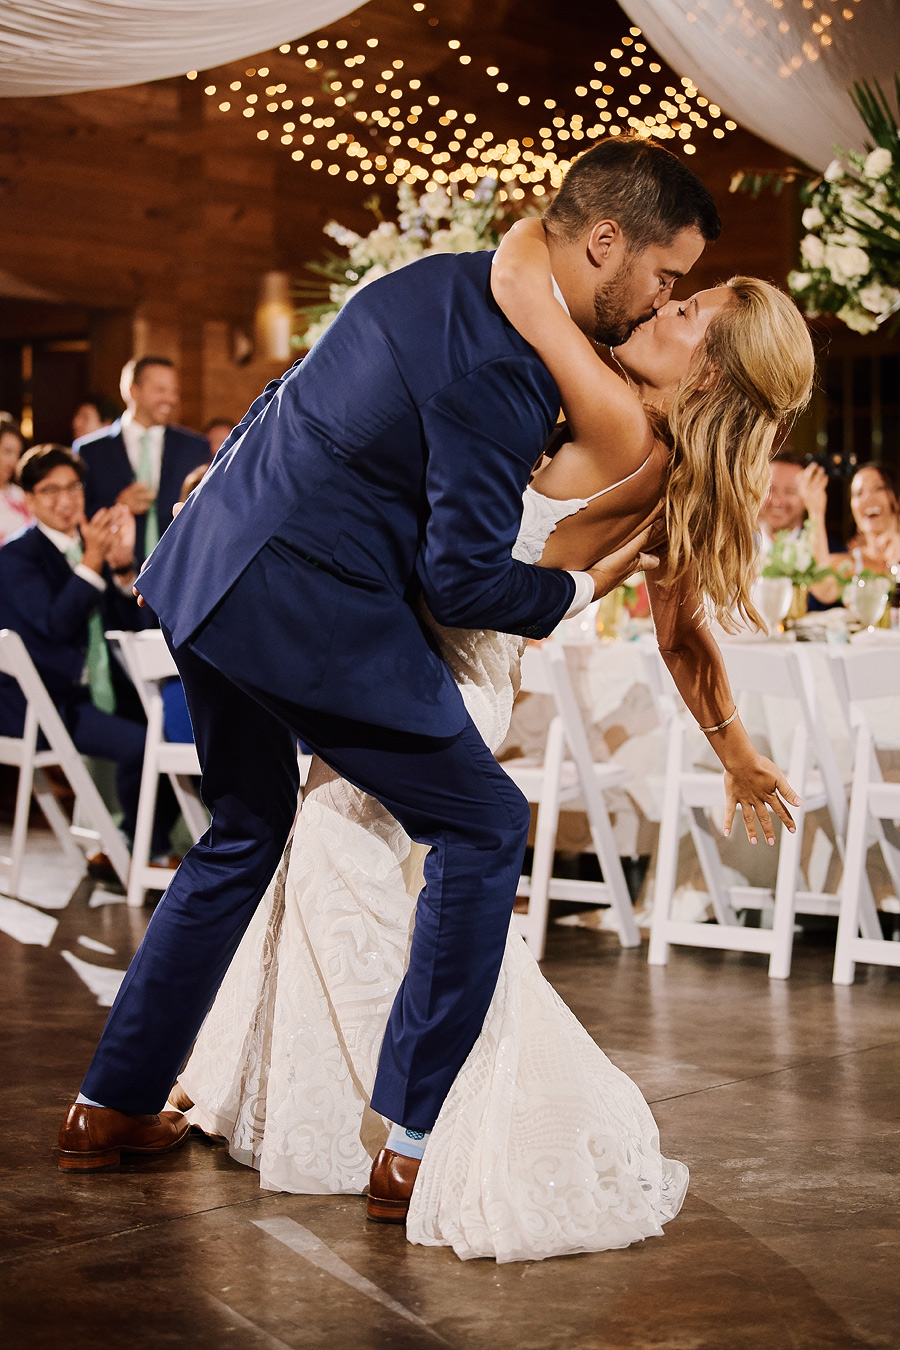 katie and todd dance